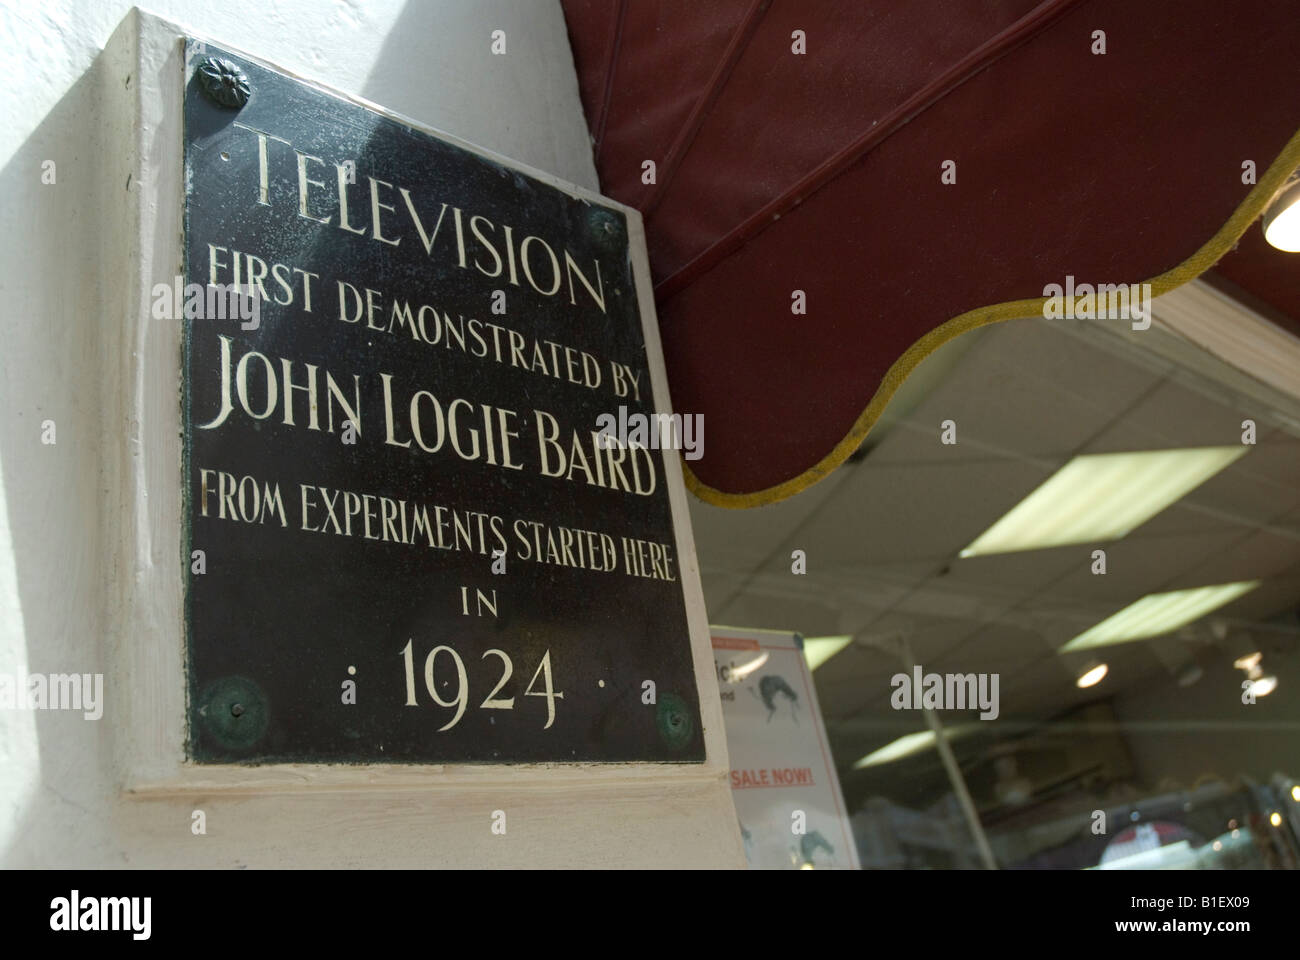 plaque to john logie baird who first demonstrated television from